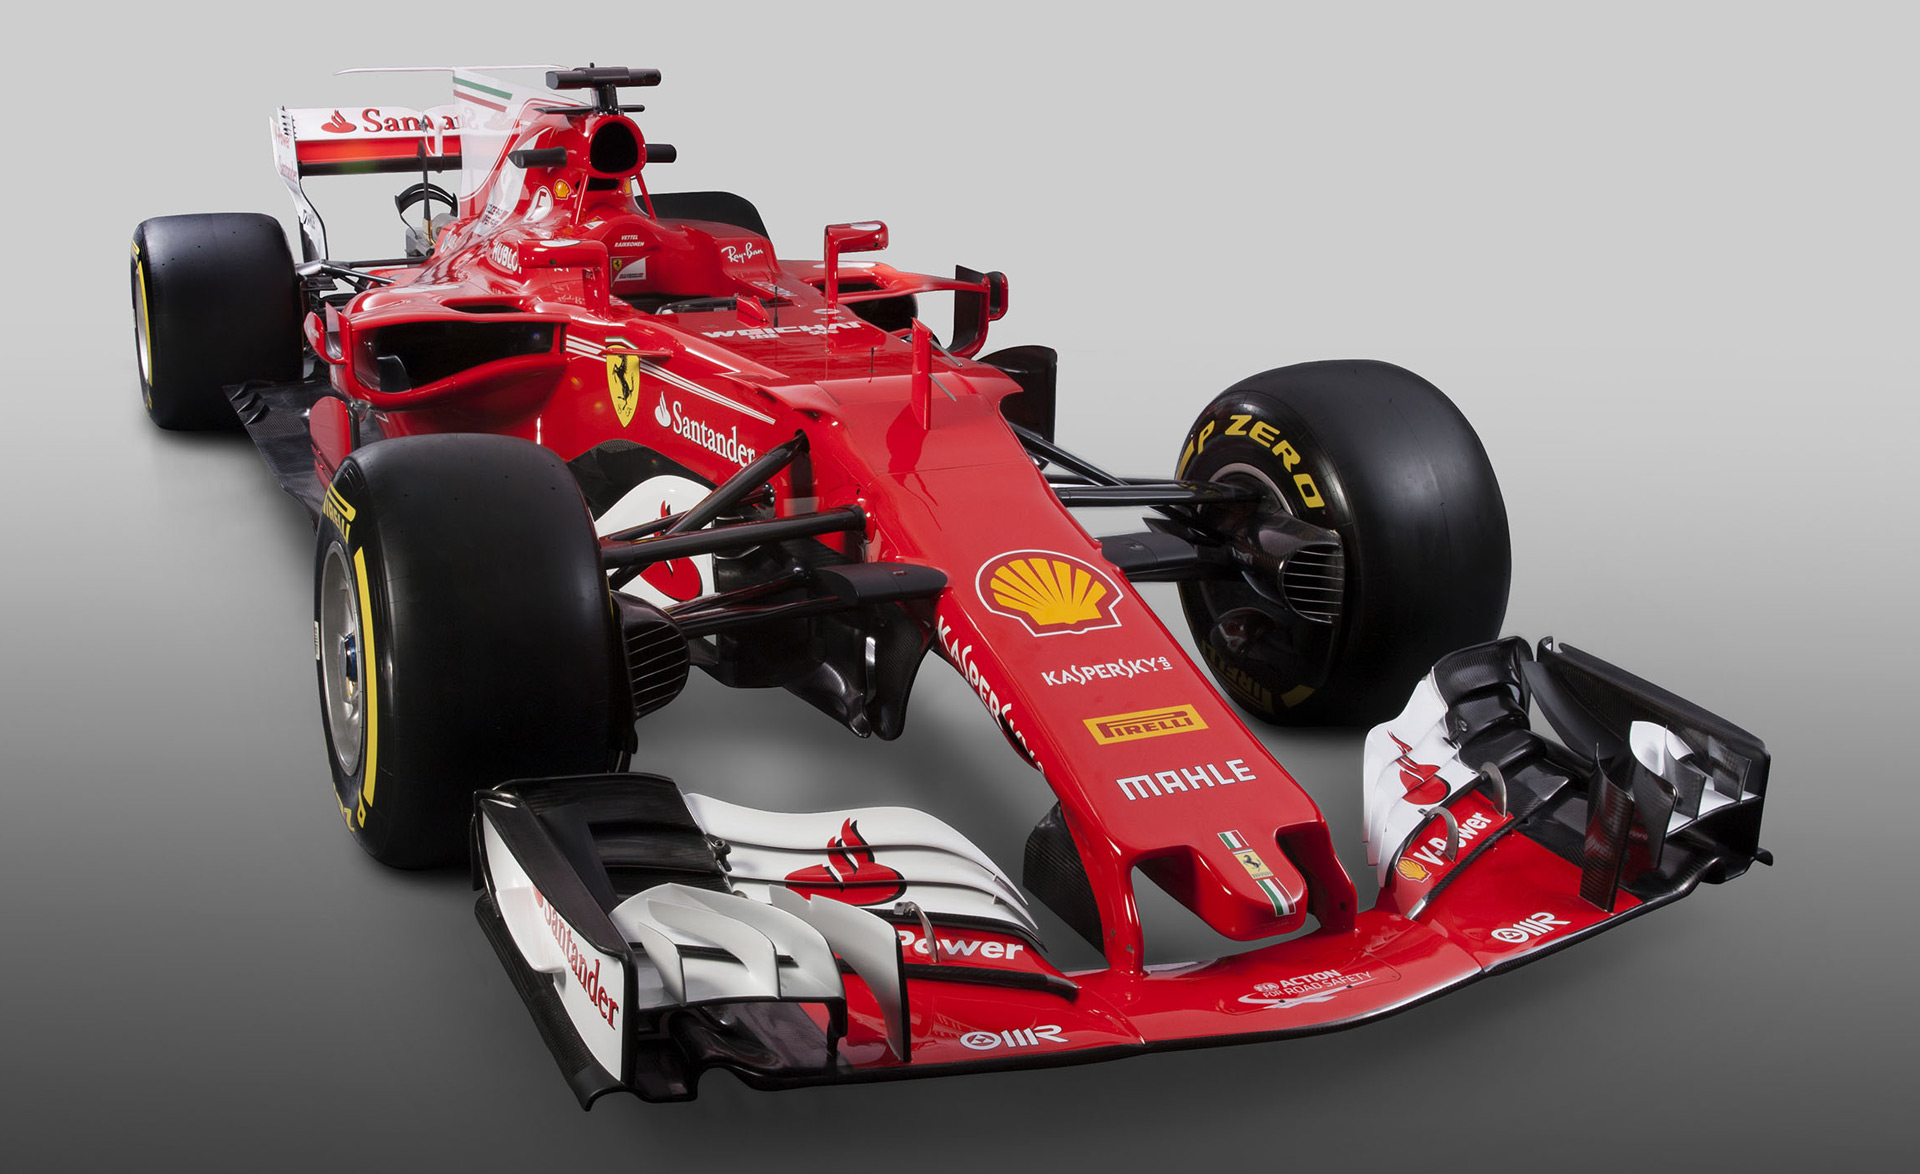 ferrari sf70h 2017 f1 car revealed features alfa romeo logo. Black Bedroom Furniture Sets. Home Design Ideas